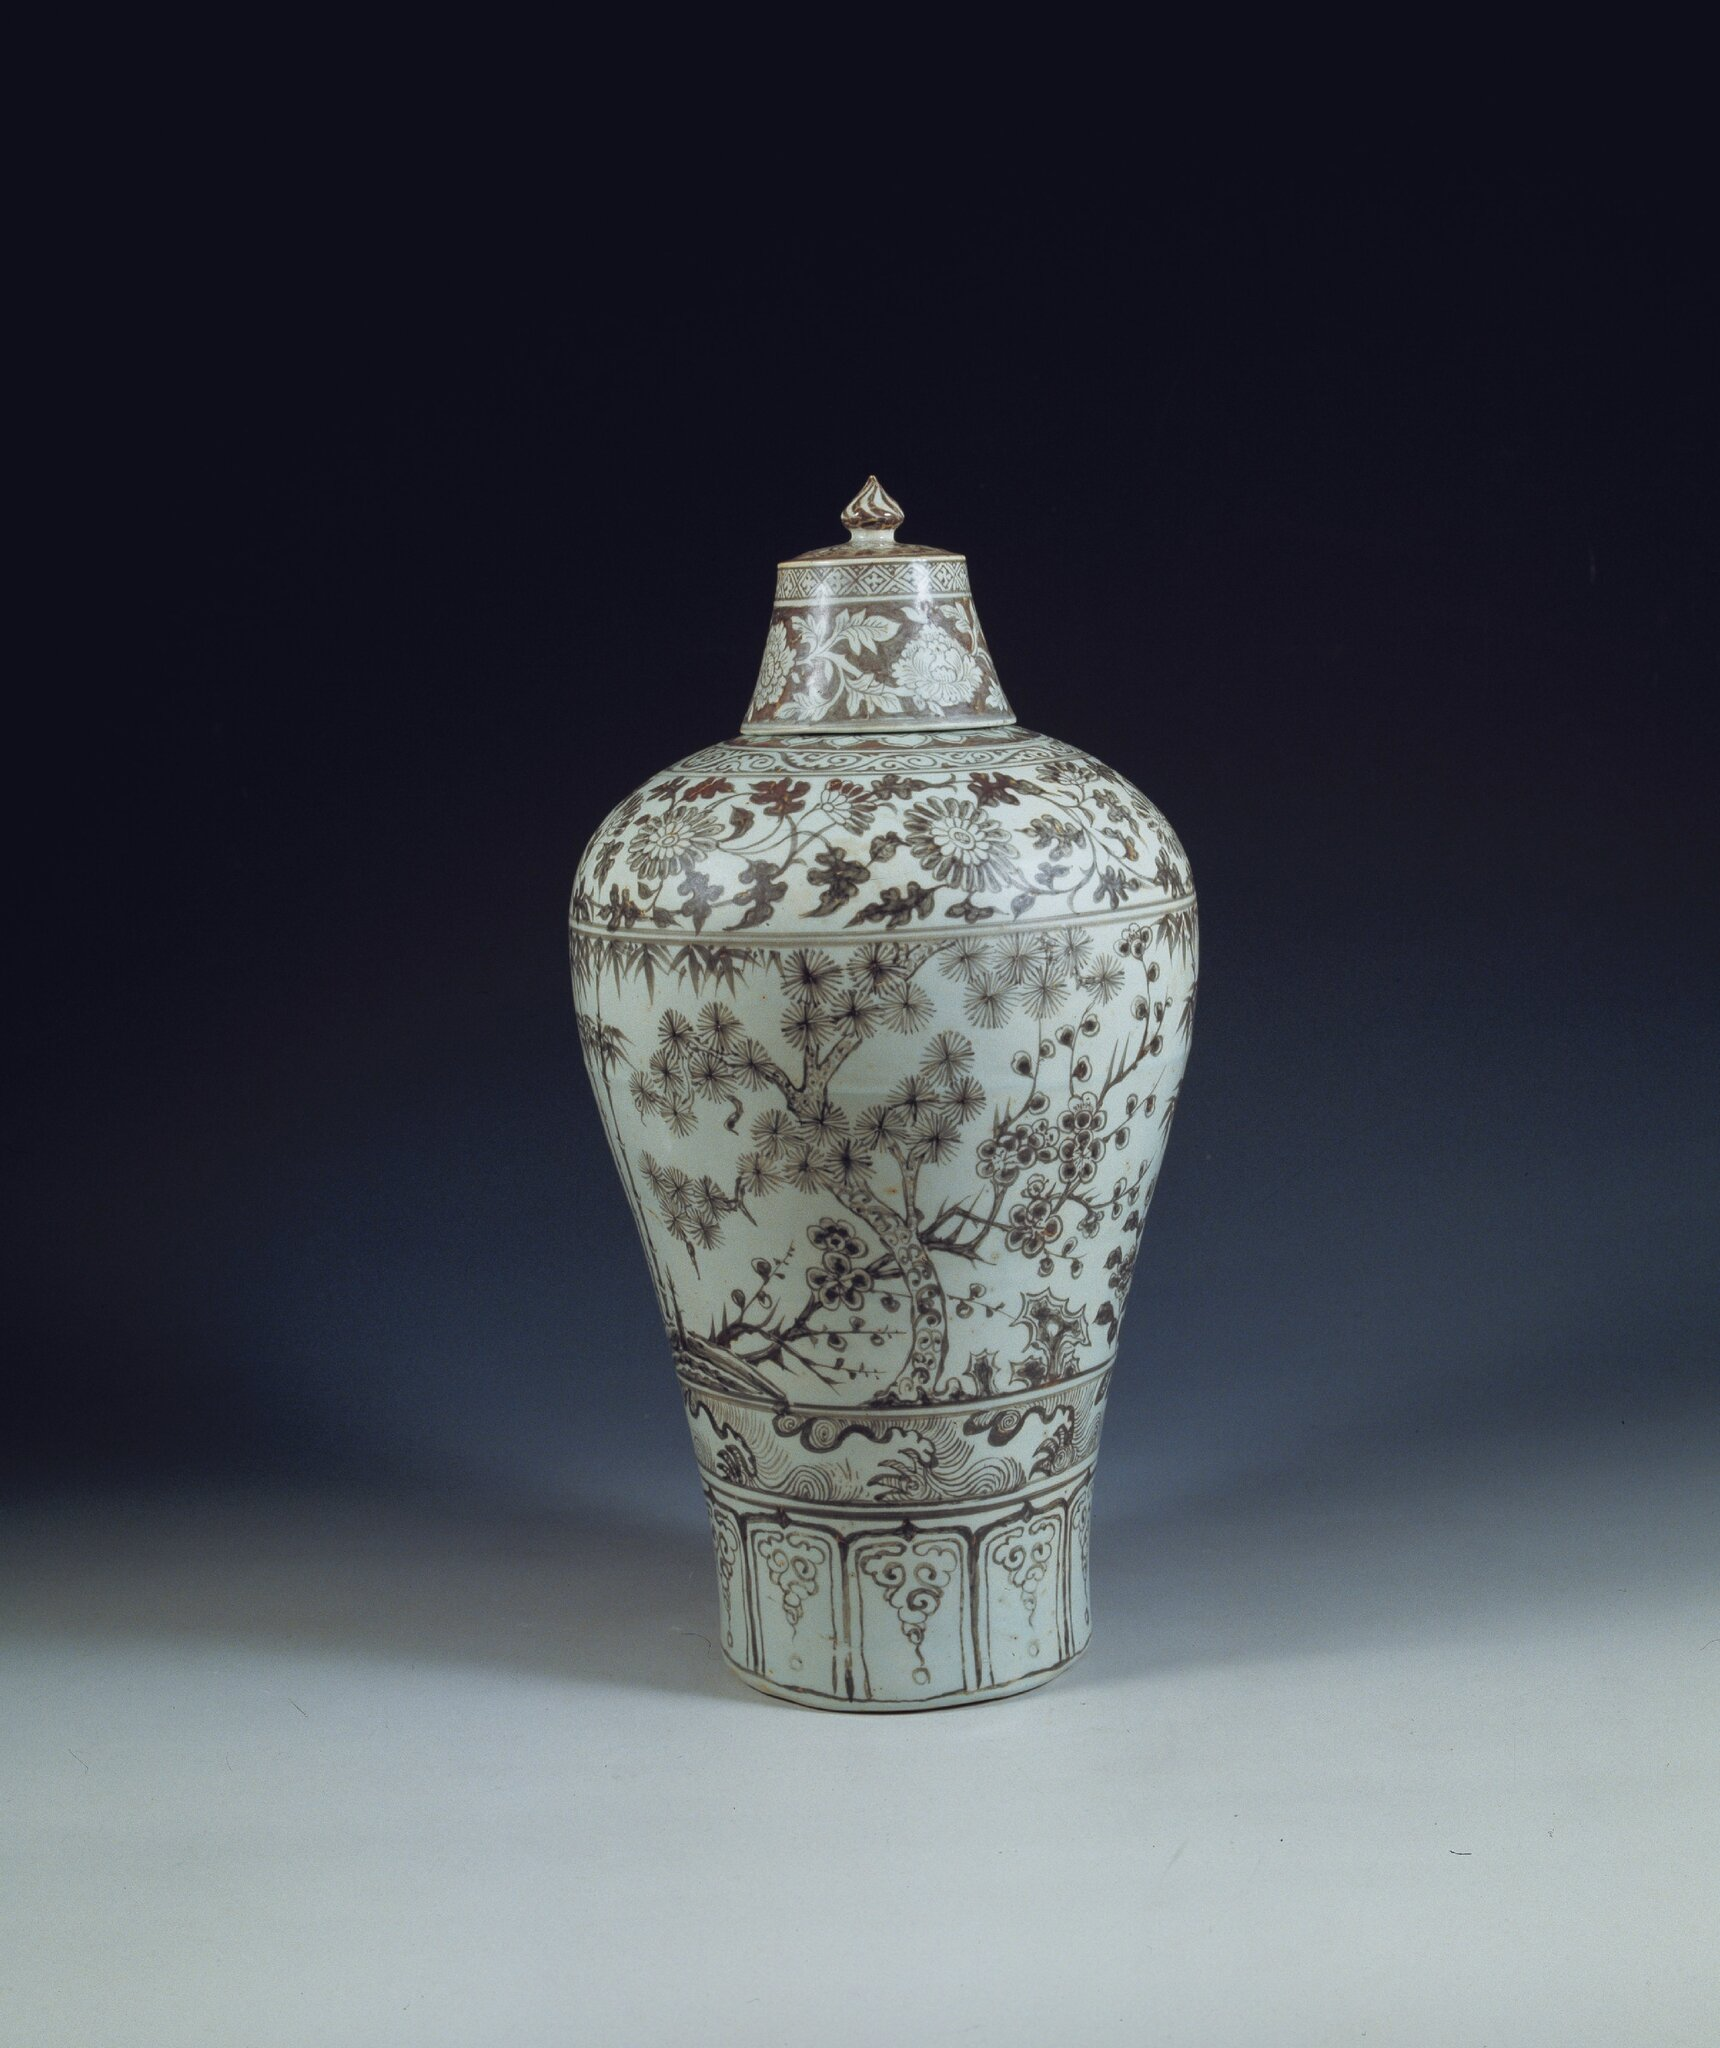 lidded-vase-in-underglaze-red-from-the-tomb-of-princess-ancheng-1384-1443-c-nanjing-museum